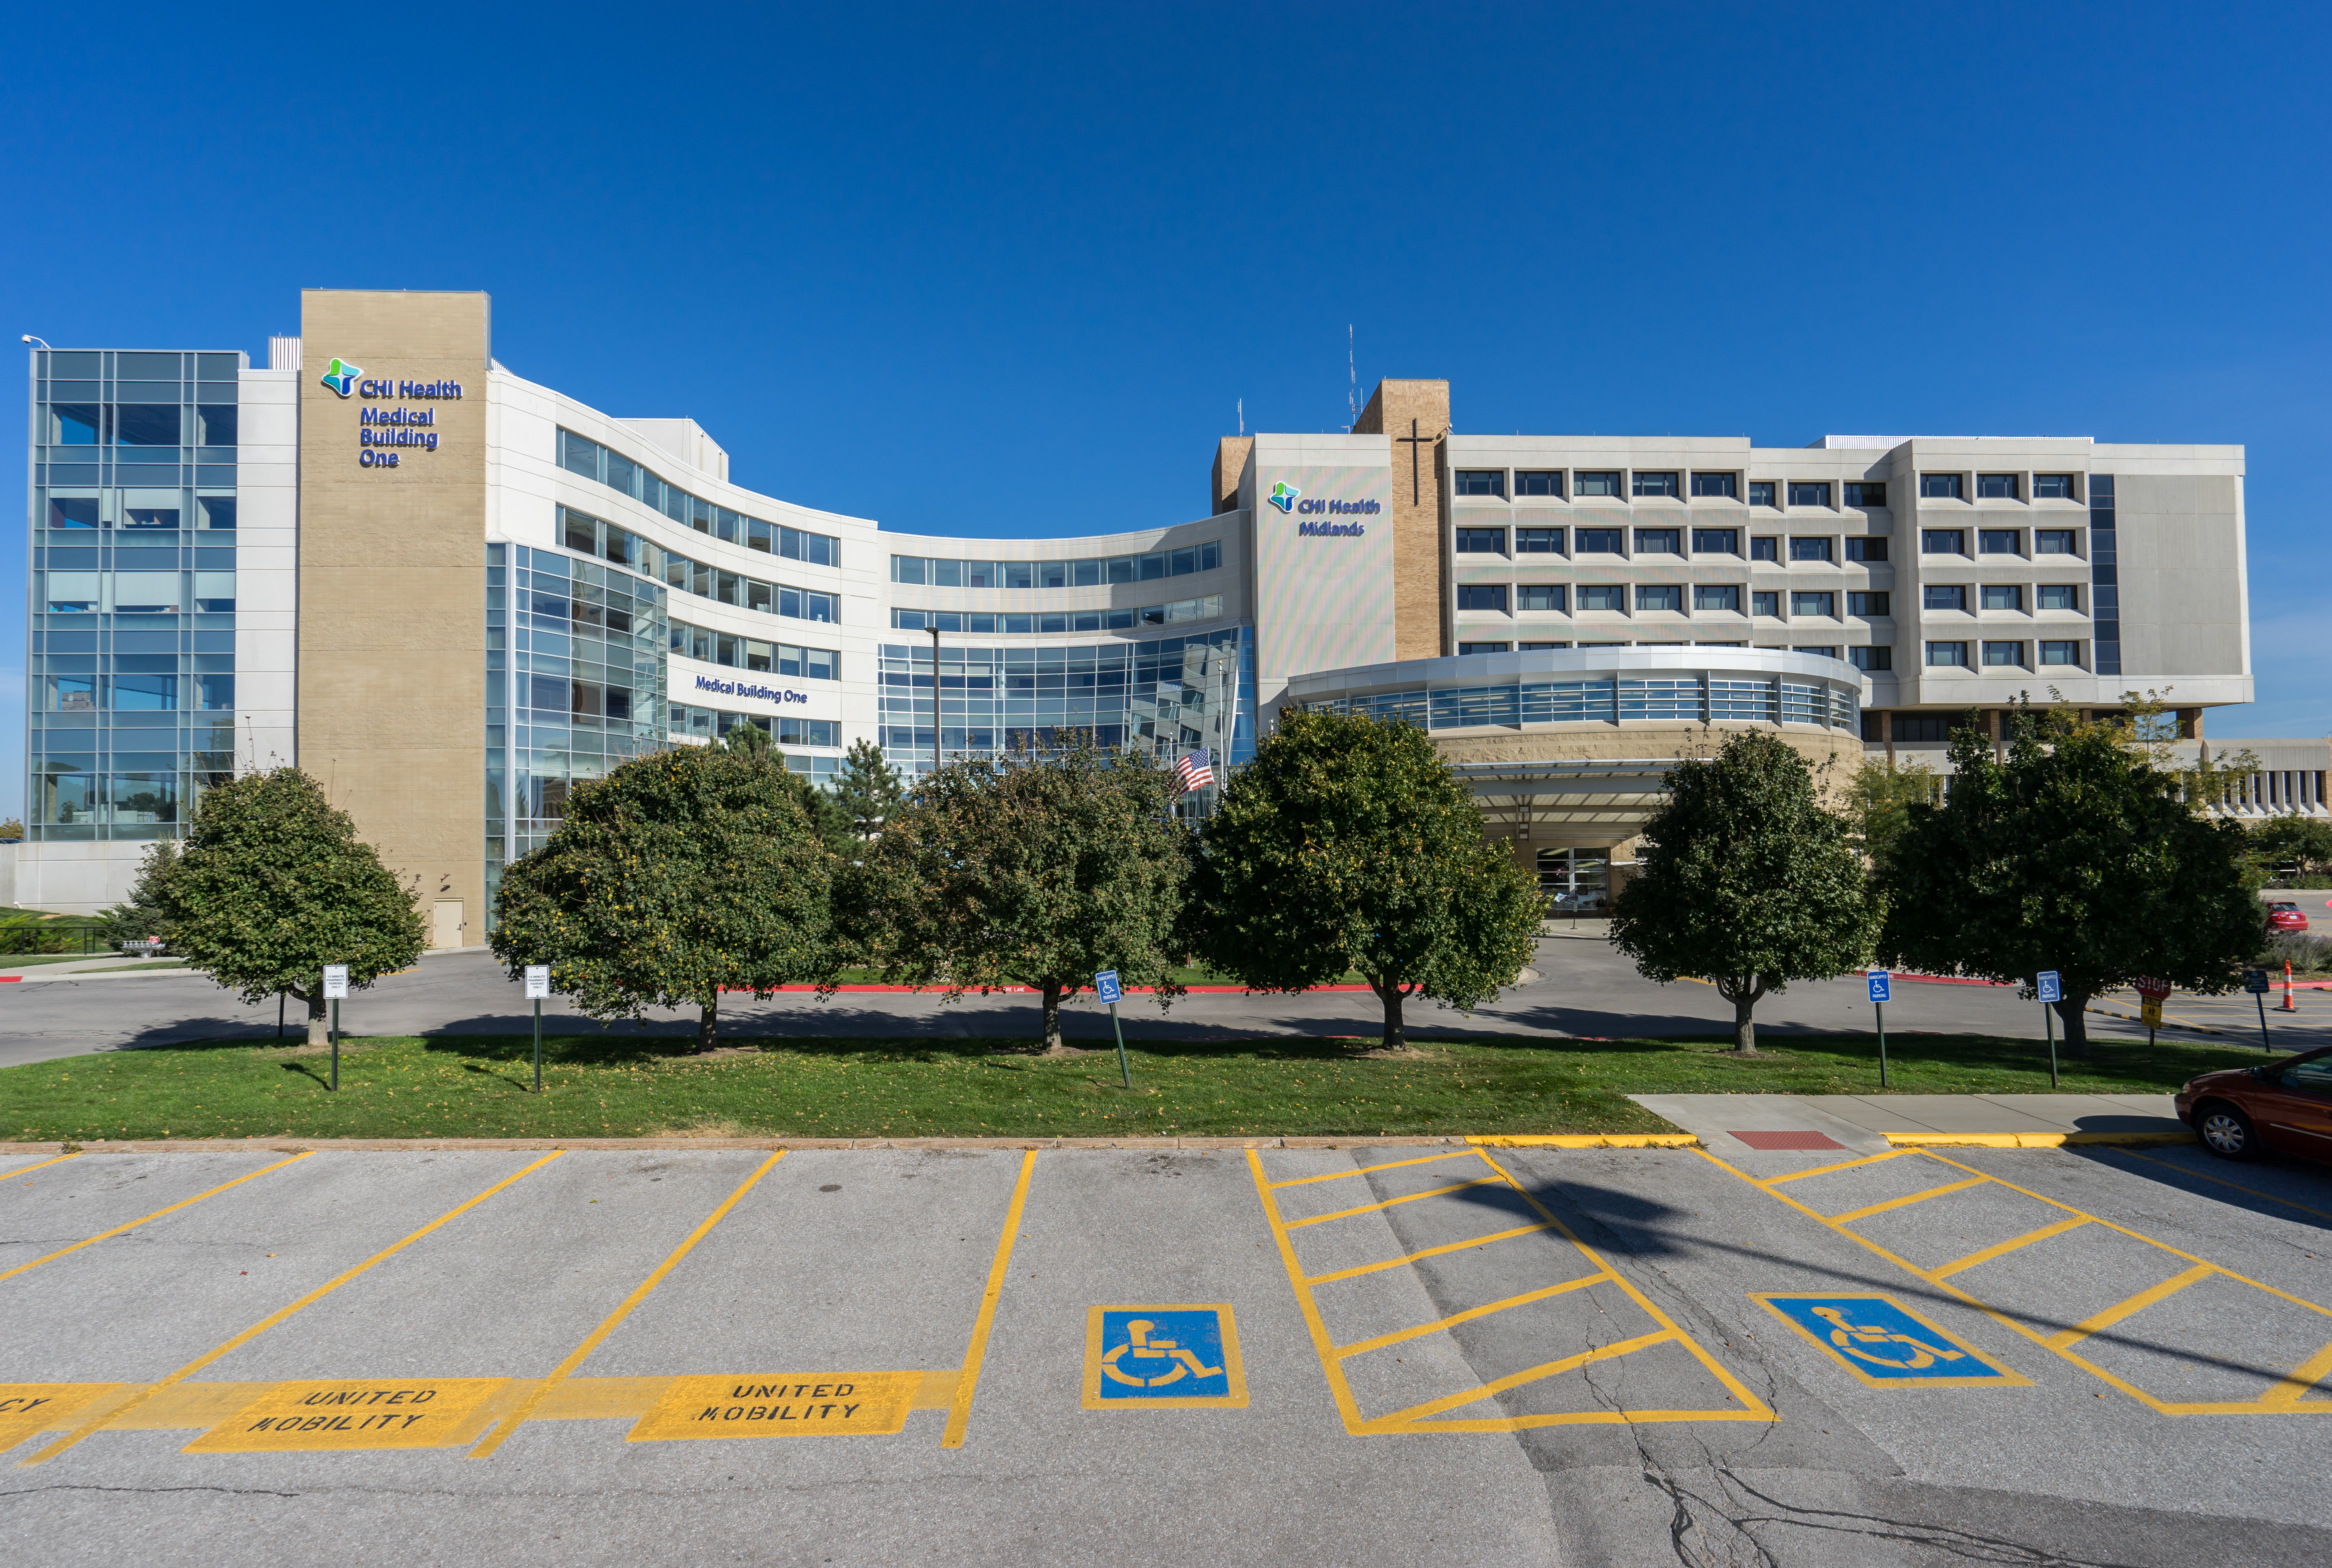 As part of its $692 million portfolio acquisition from Catholic Health Initiatives (CHI), Physicians Realty Trust acquired CHI Medical Building One (left), which is connected to the 121-bed building CHI Health Midlands Hospital (right) in Papillion, Neb. Photo courtesy of CBRE Group Inc.